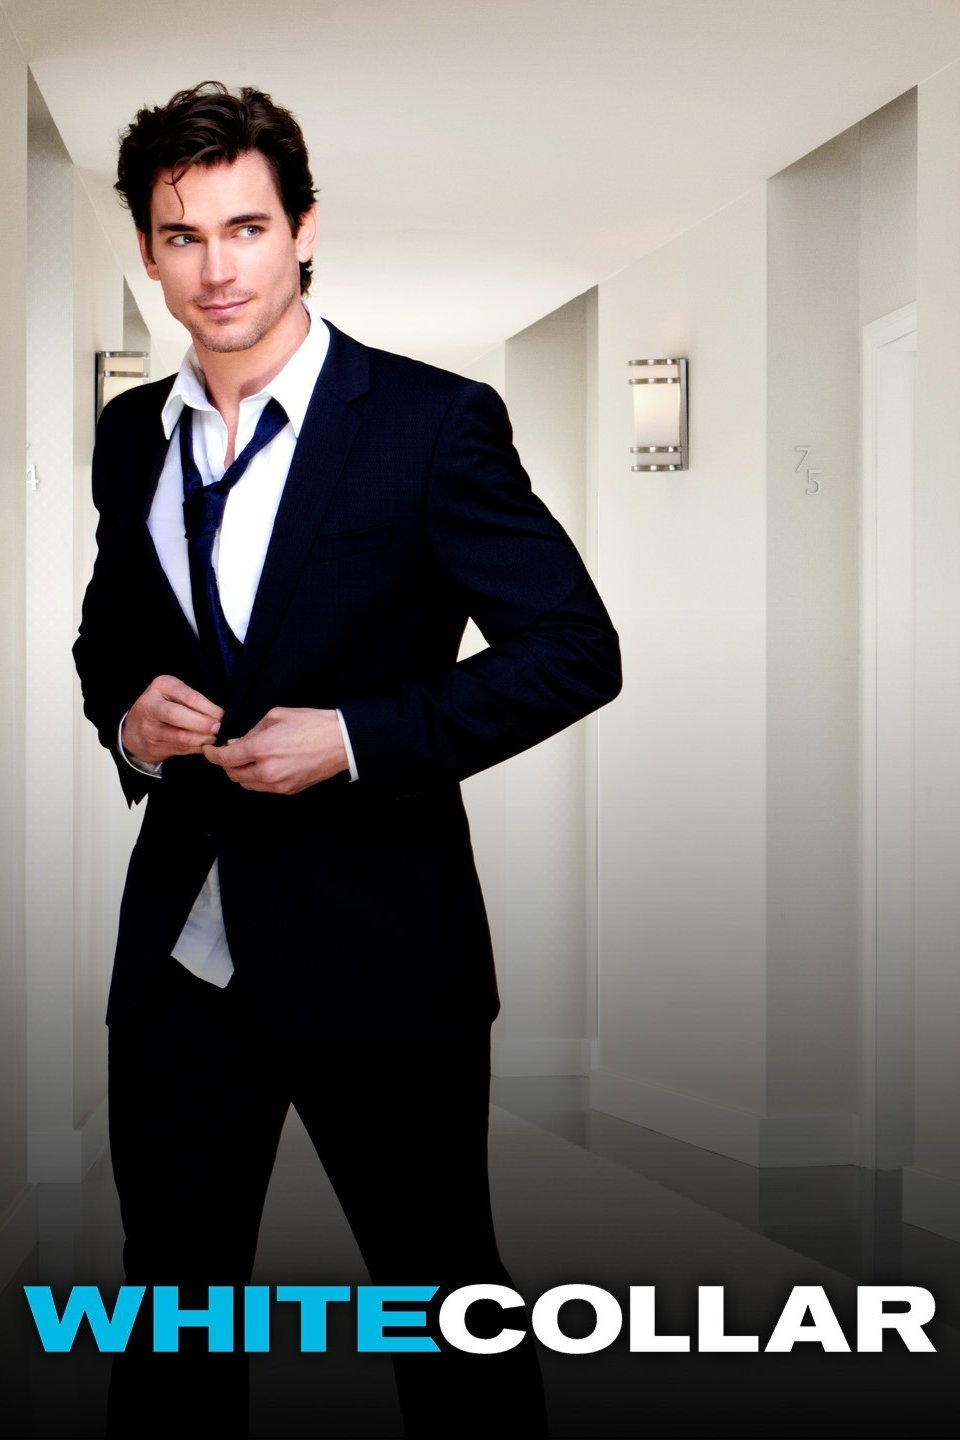 White Collar-White Collar TV